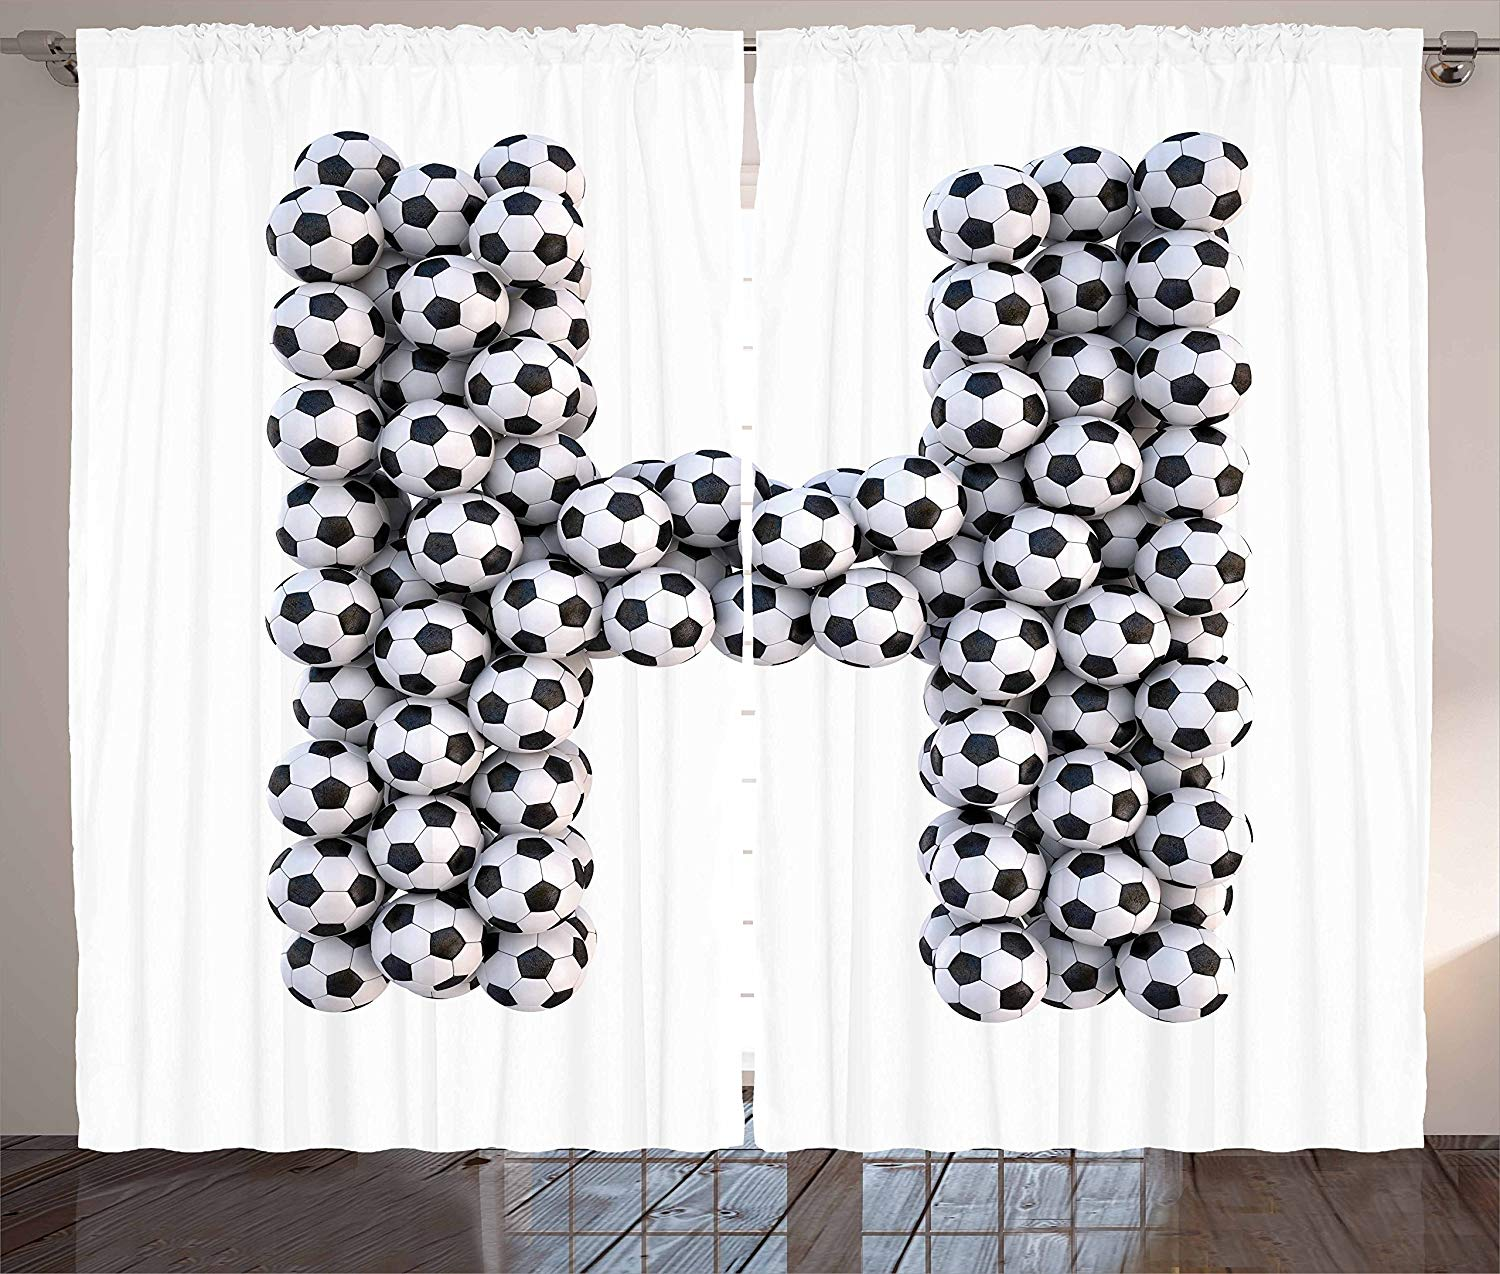 Letter H Curtains Soccer Balls Arrangement Game Day Theme Abstract Composition With Uppercase H Living Room Bedroom Window Drape